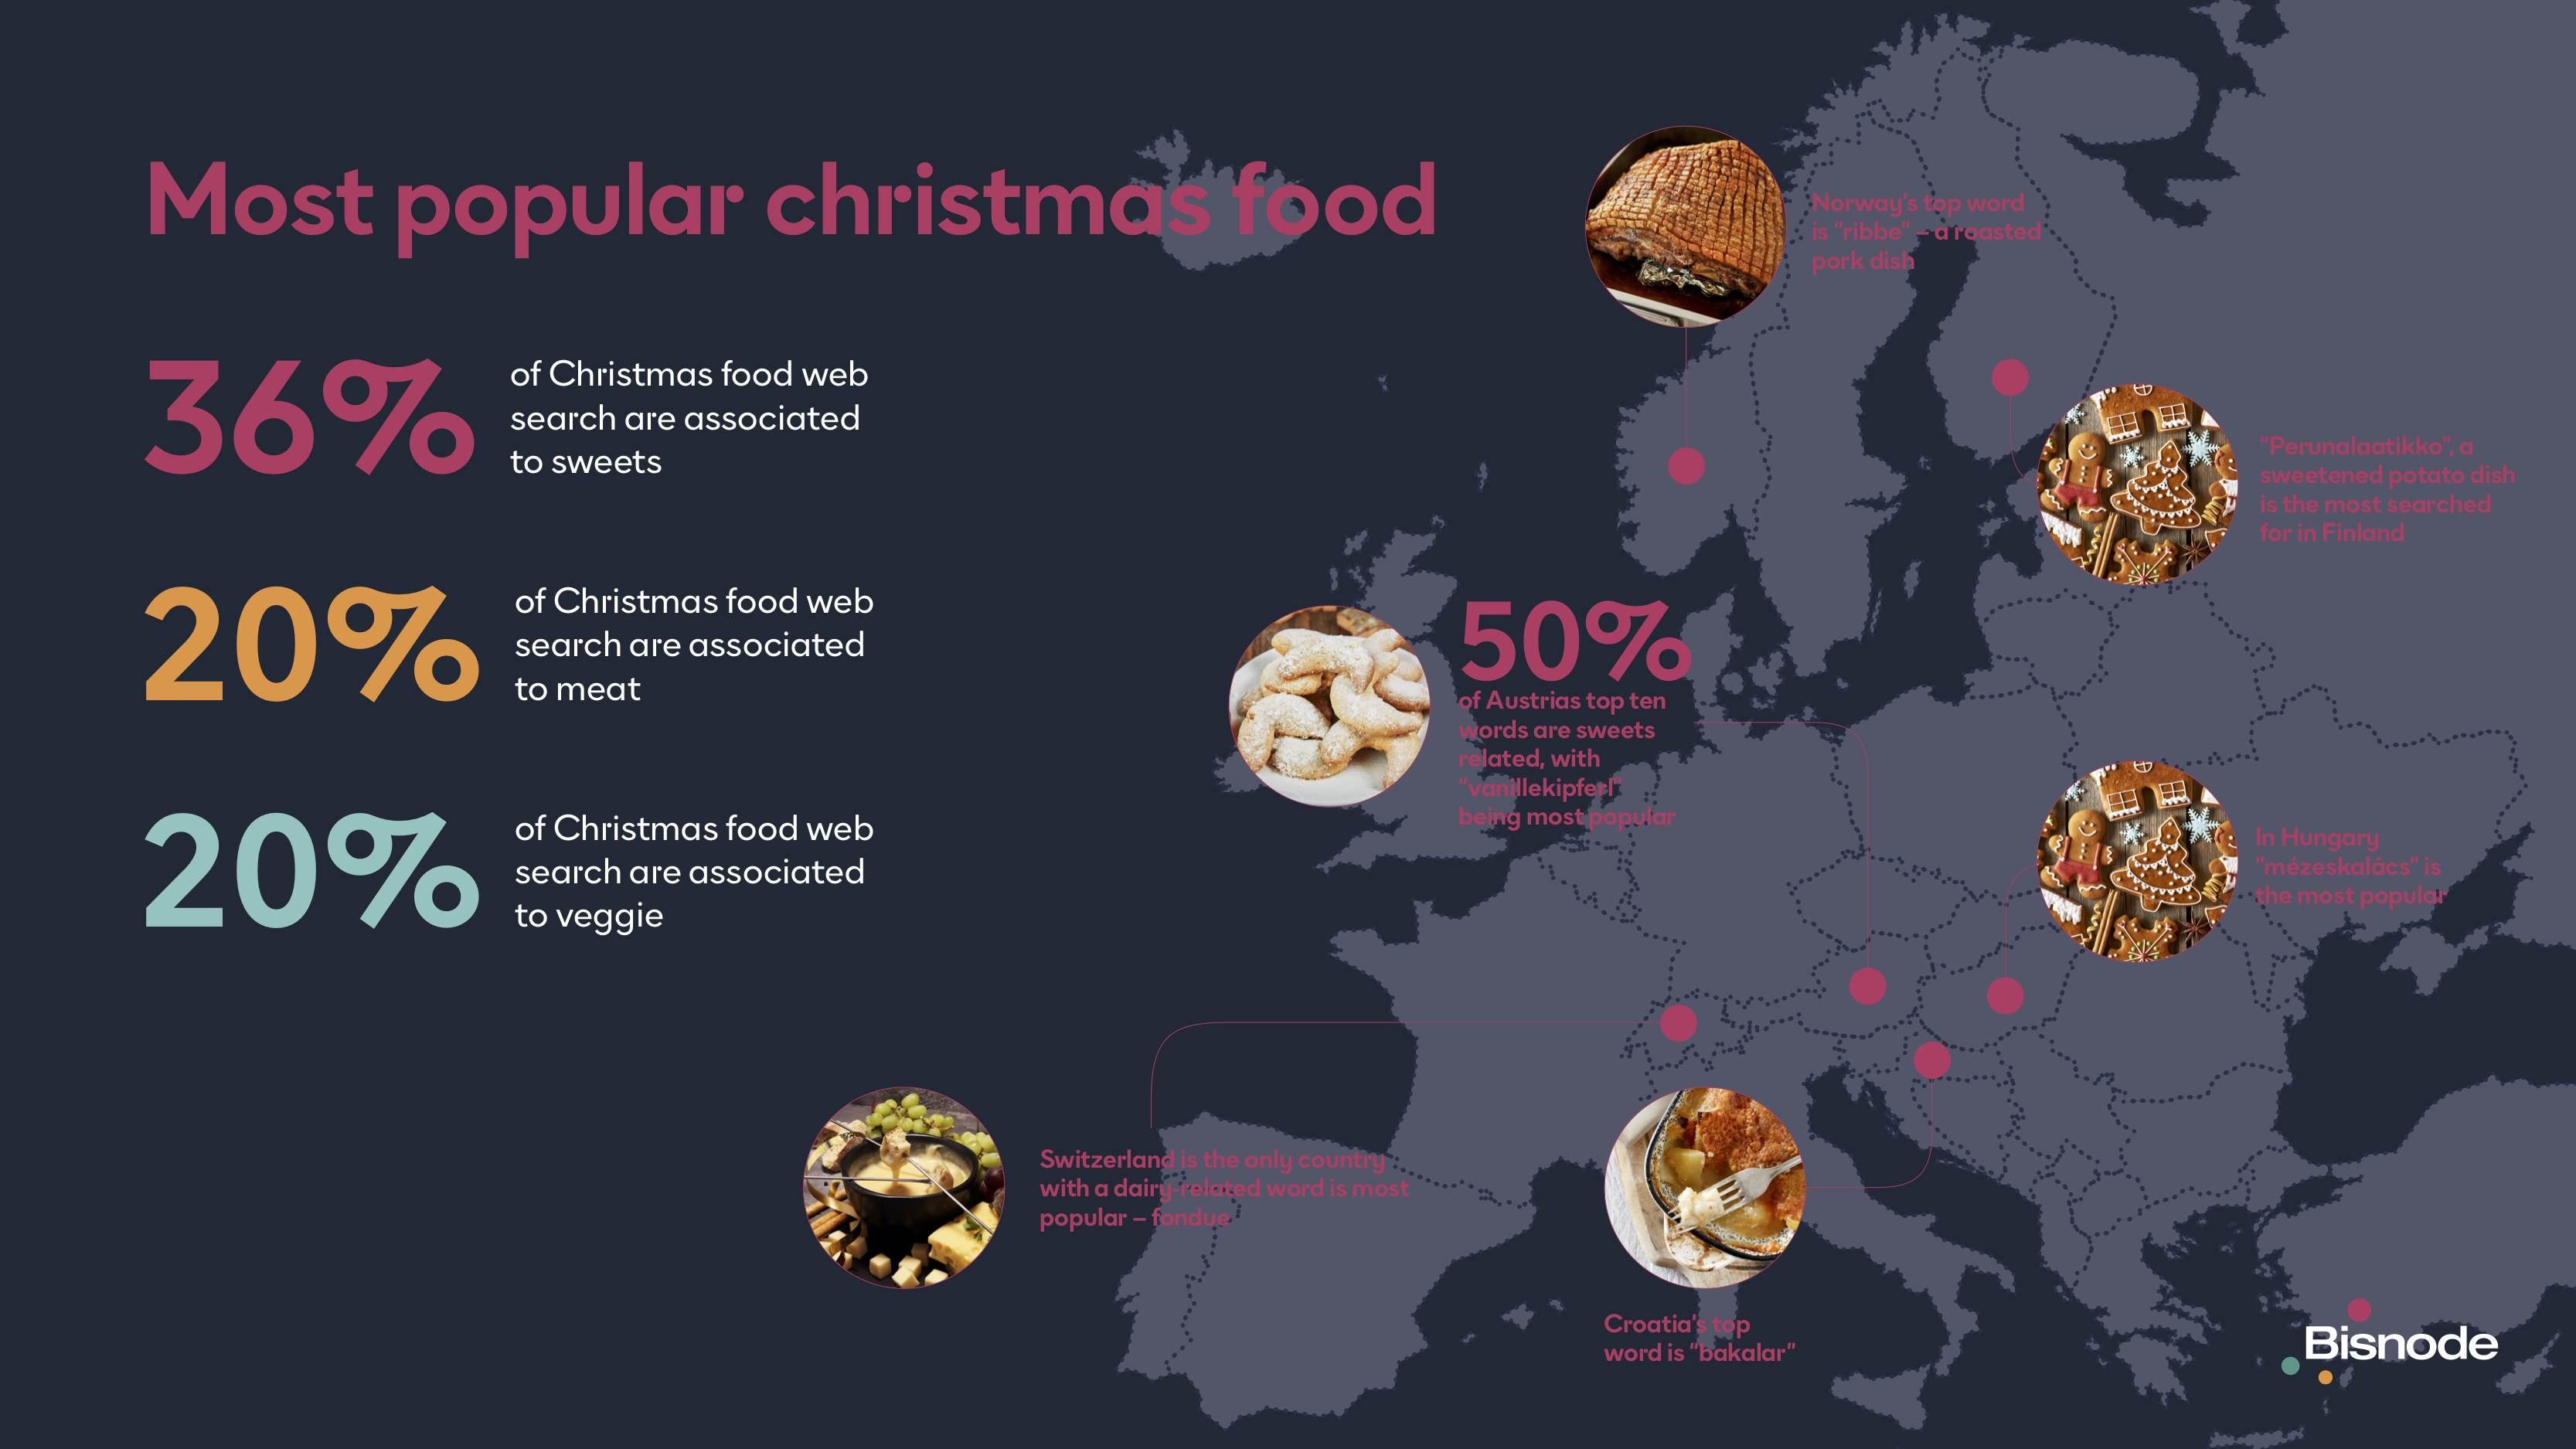 Data showing most popular christmas food in europe